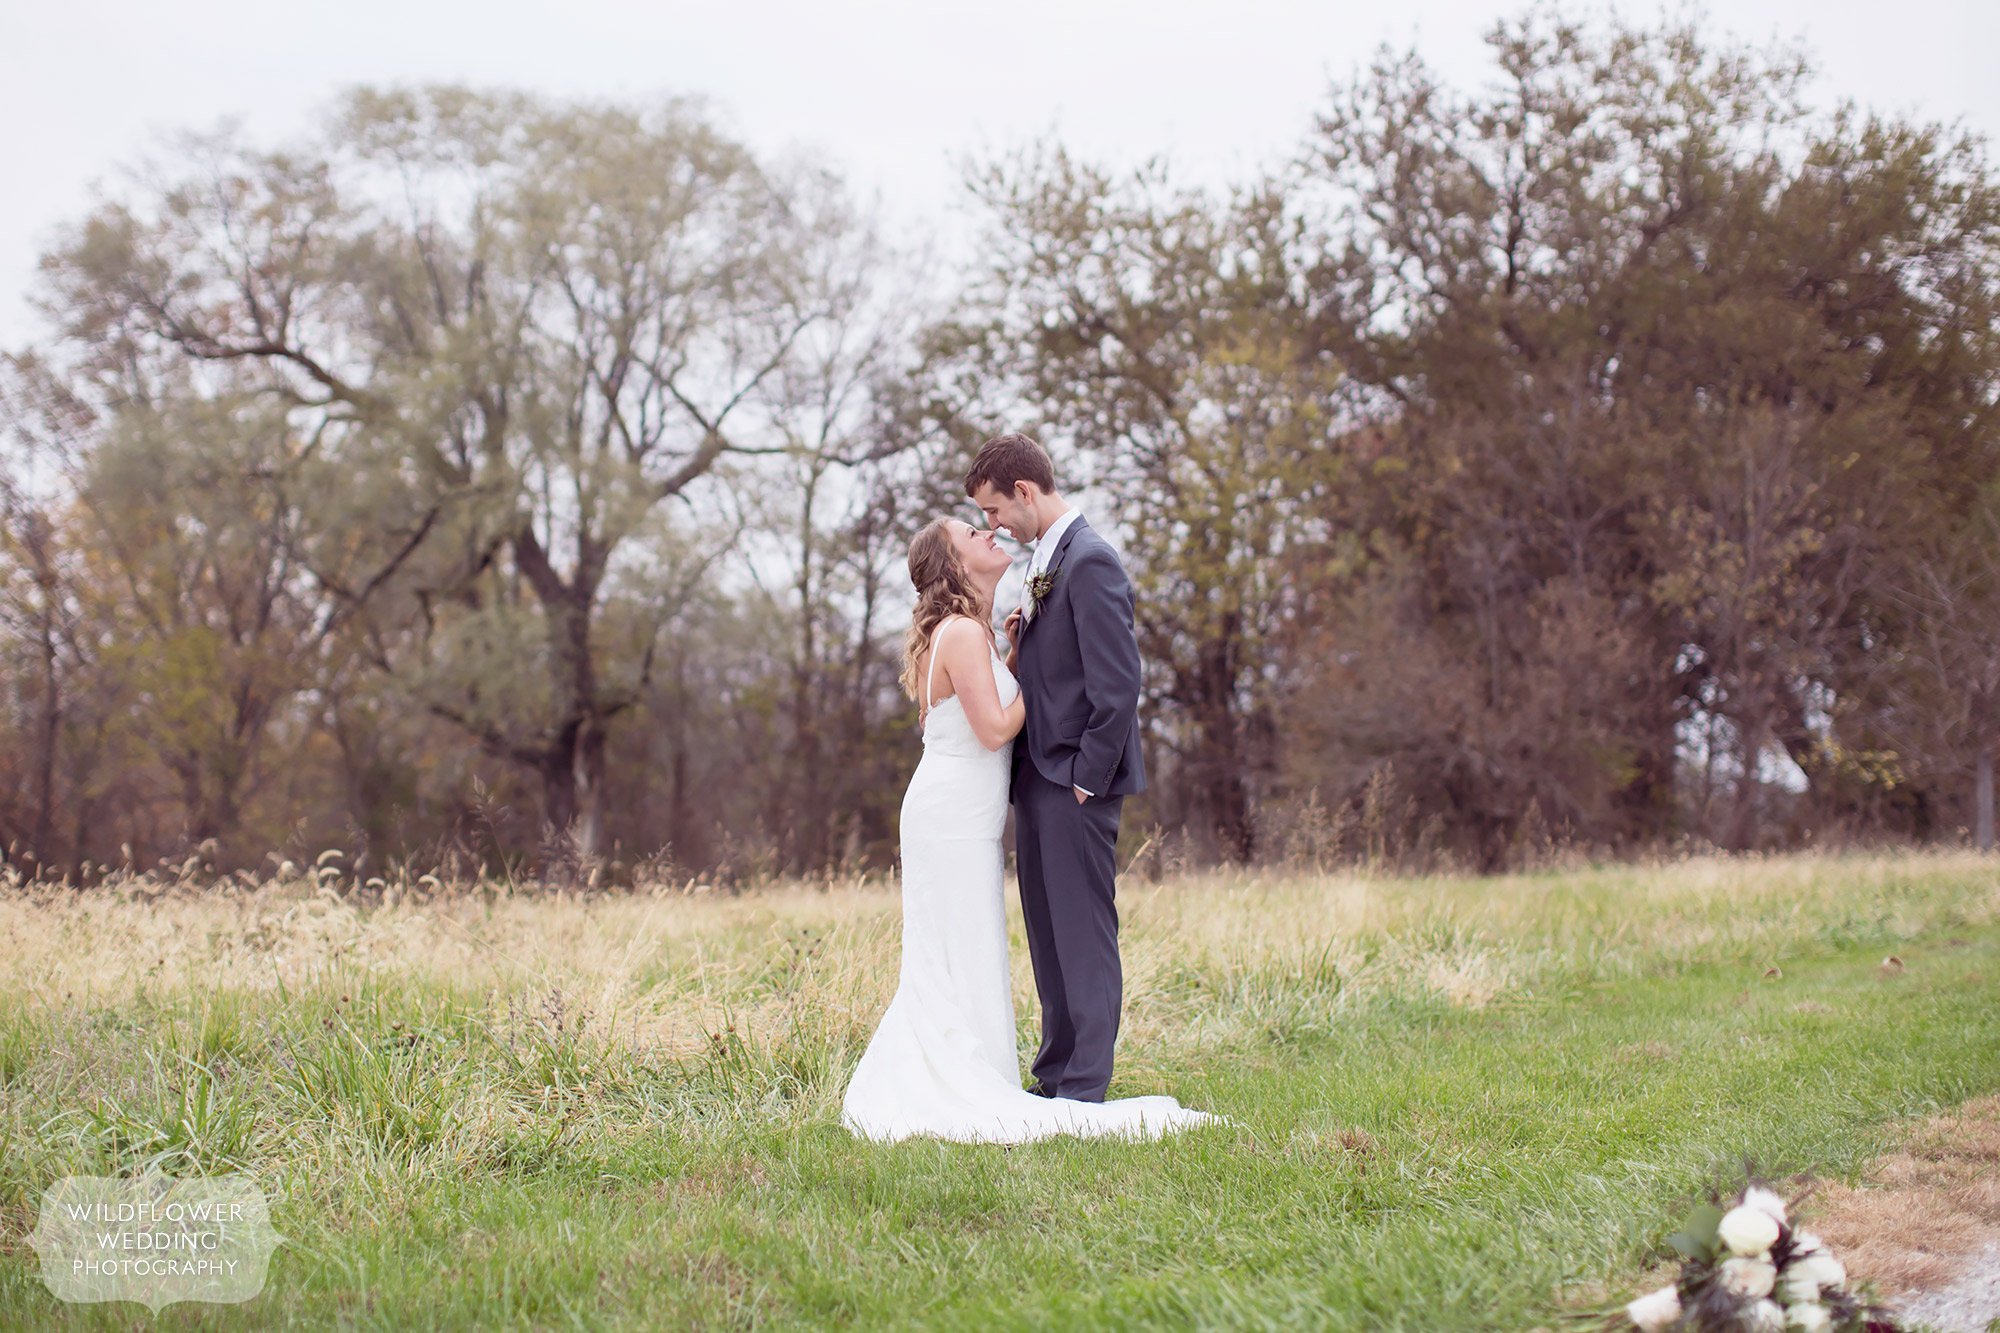 Outdoor field wedding photography of the bride and groom in Fayette, MO.